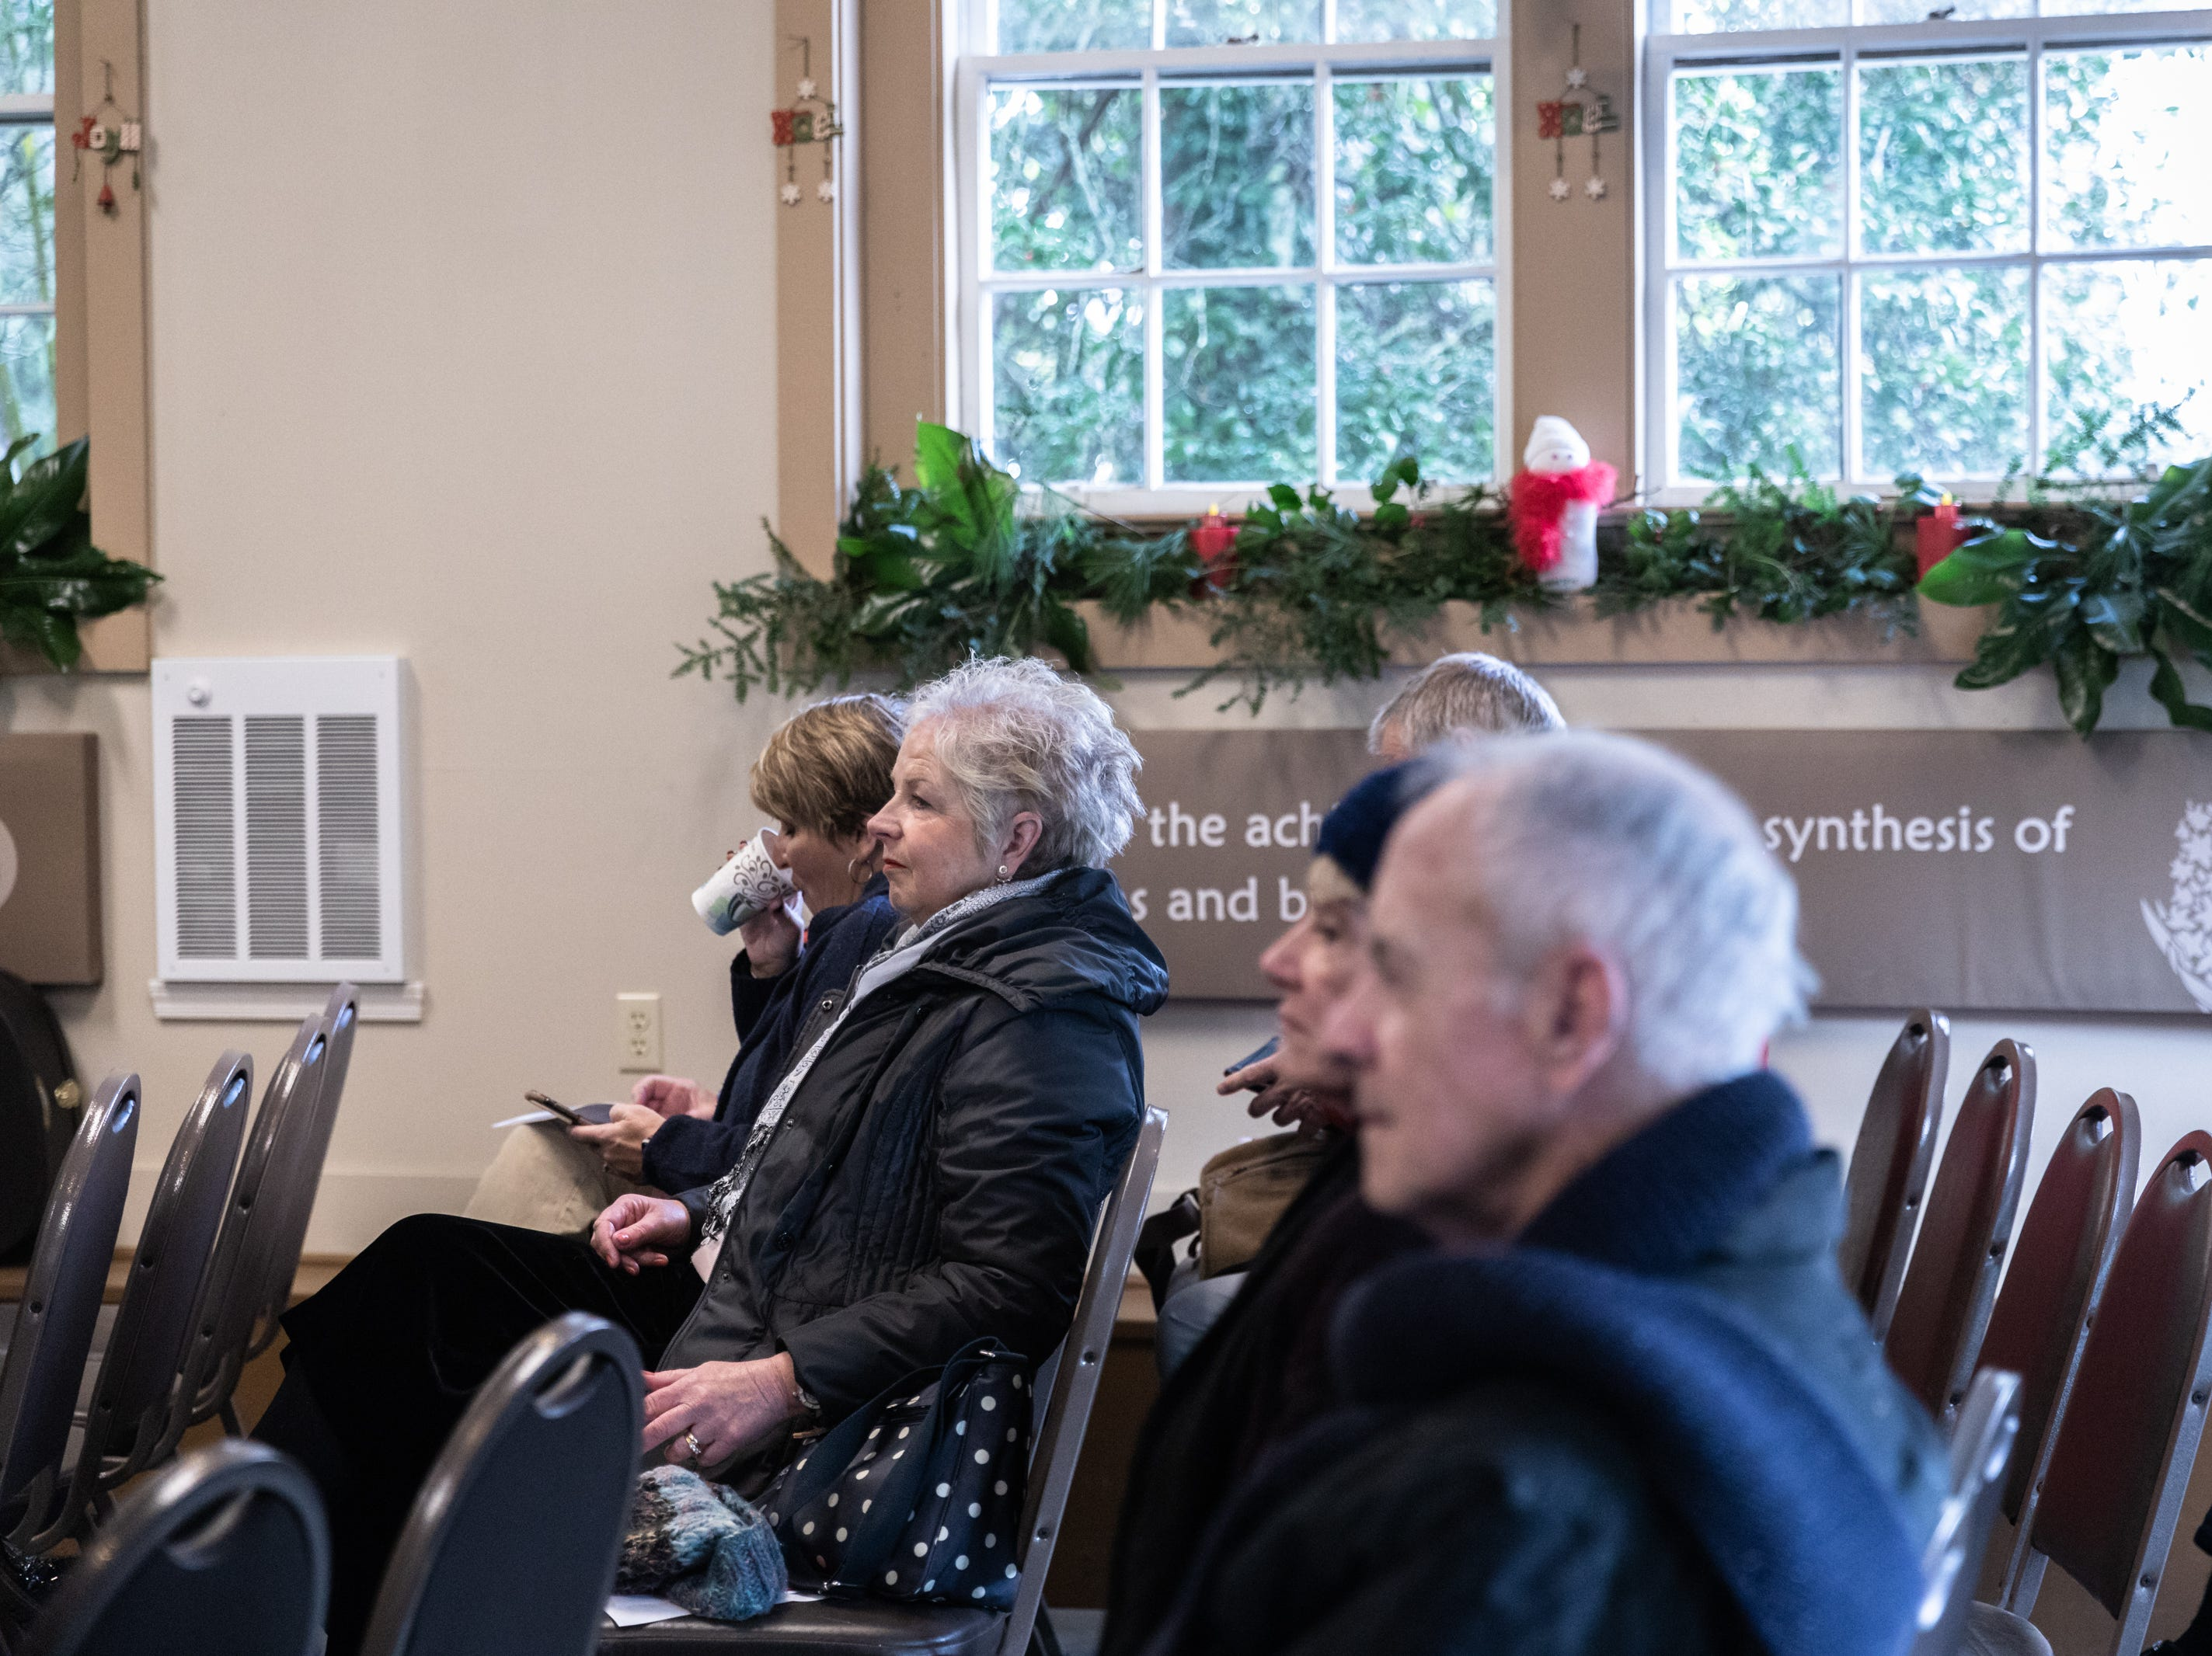 Visitors to the Carl Sandburg home listen to live music by Jean Satz and Alan Satz who go by the name Geriatric Jukebox, while the park celebrated its 50th anniversary Nov. 24, 2018, with their Christmas at Connemara event featuring live music, storytellers and tours of the home.